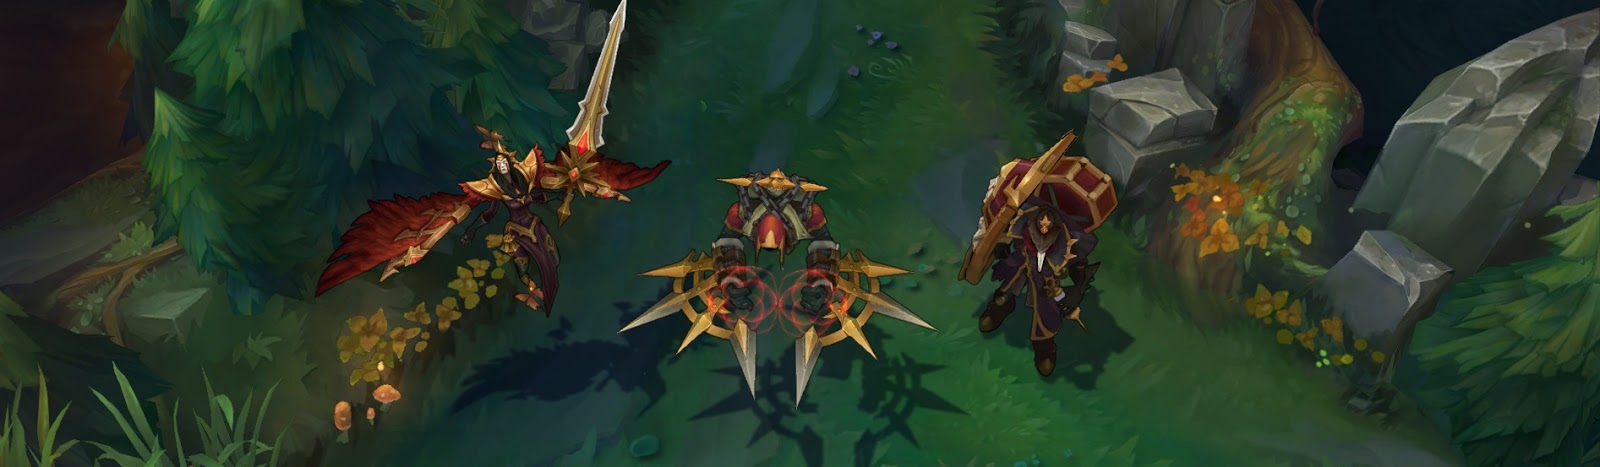 League Of Legends Gets Gothic Themed Skins Forgets To Include